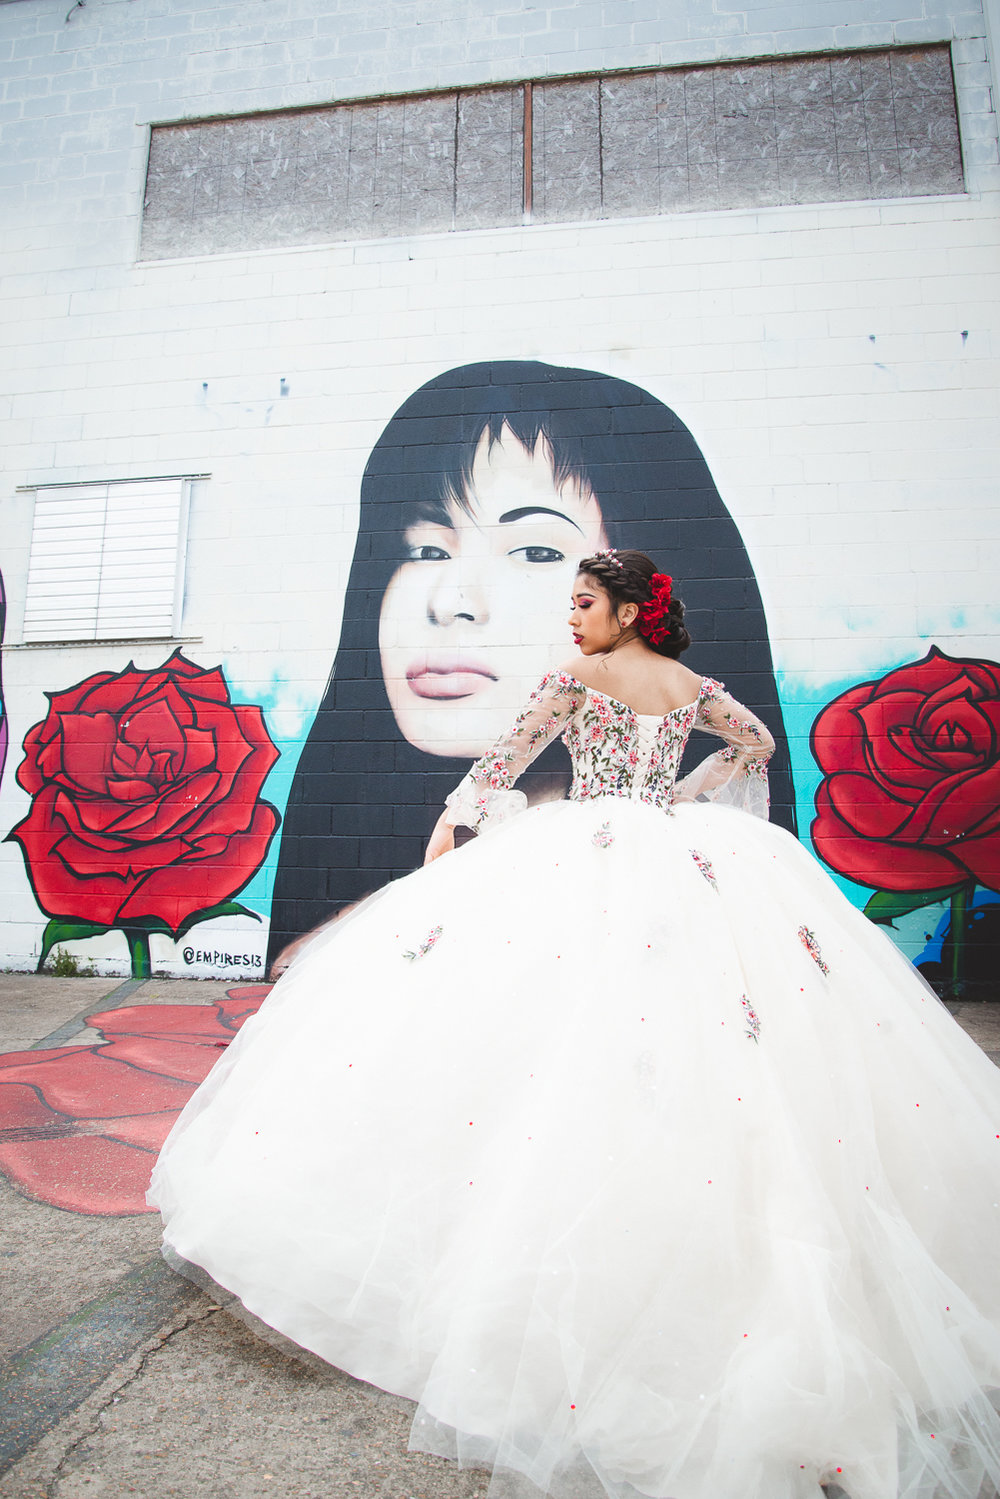 the best houston wedding quince sweet 16 batmitzvah mar mitvahquinceanera best photographer katy texas engagement tomball sugarland brenham pearland pasadena clear lake friendswood